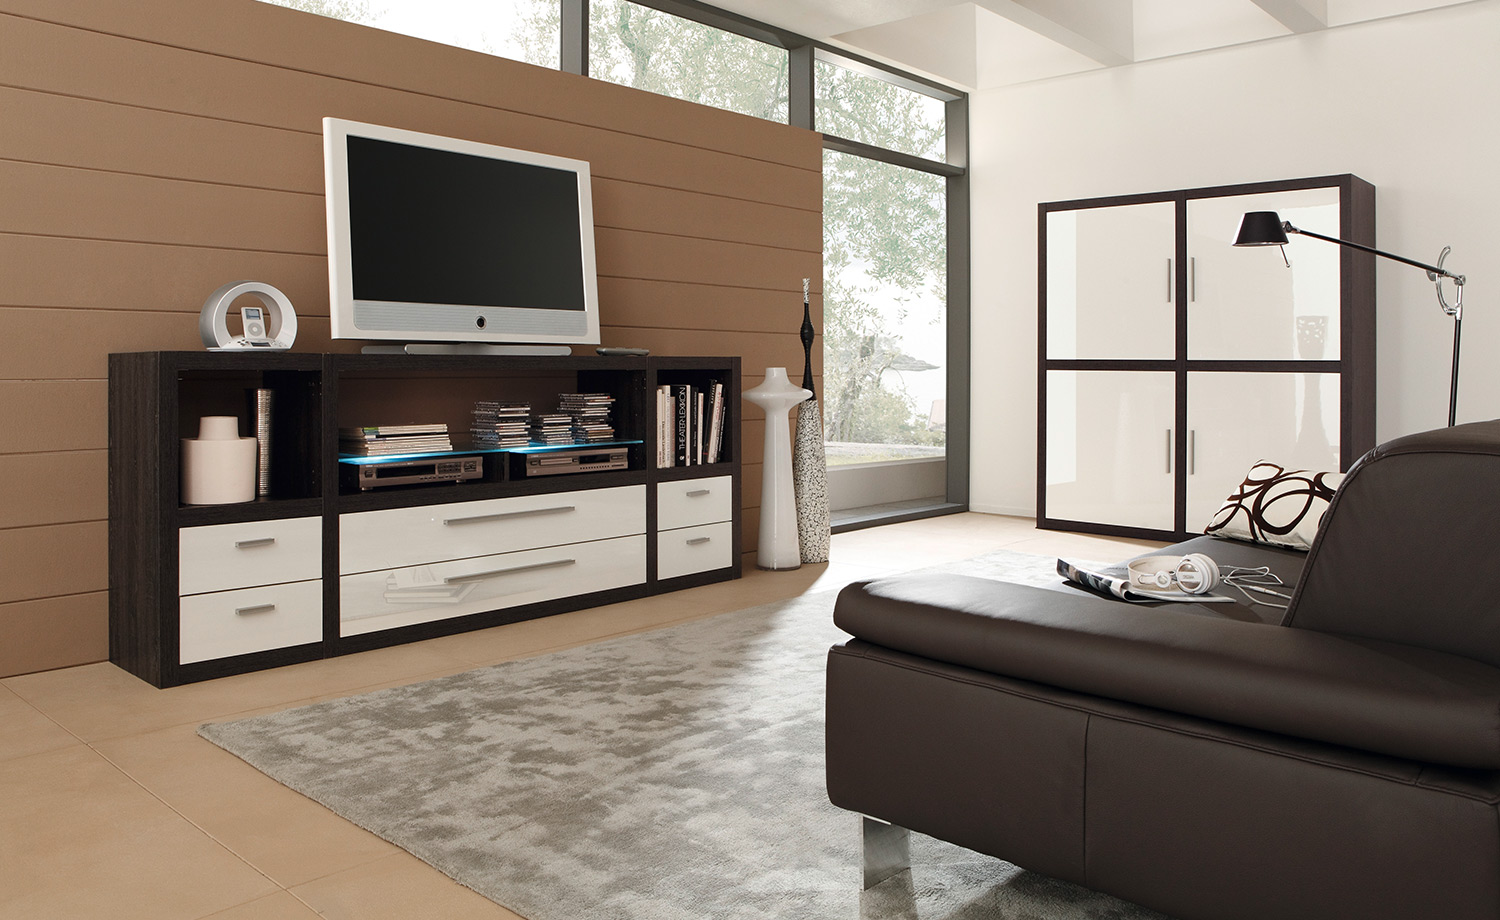 wie viel grad m ssen im wohnzimmer sein. Black Bedroom Furniture Sets. Home Design Ideas